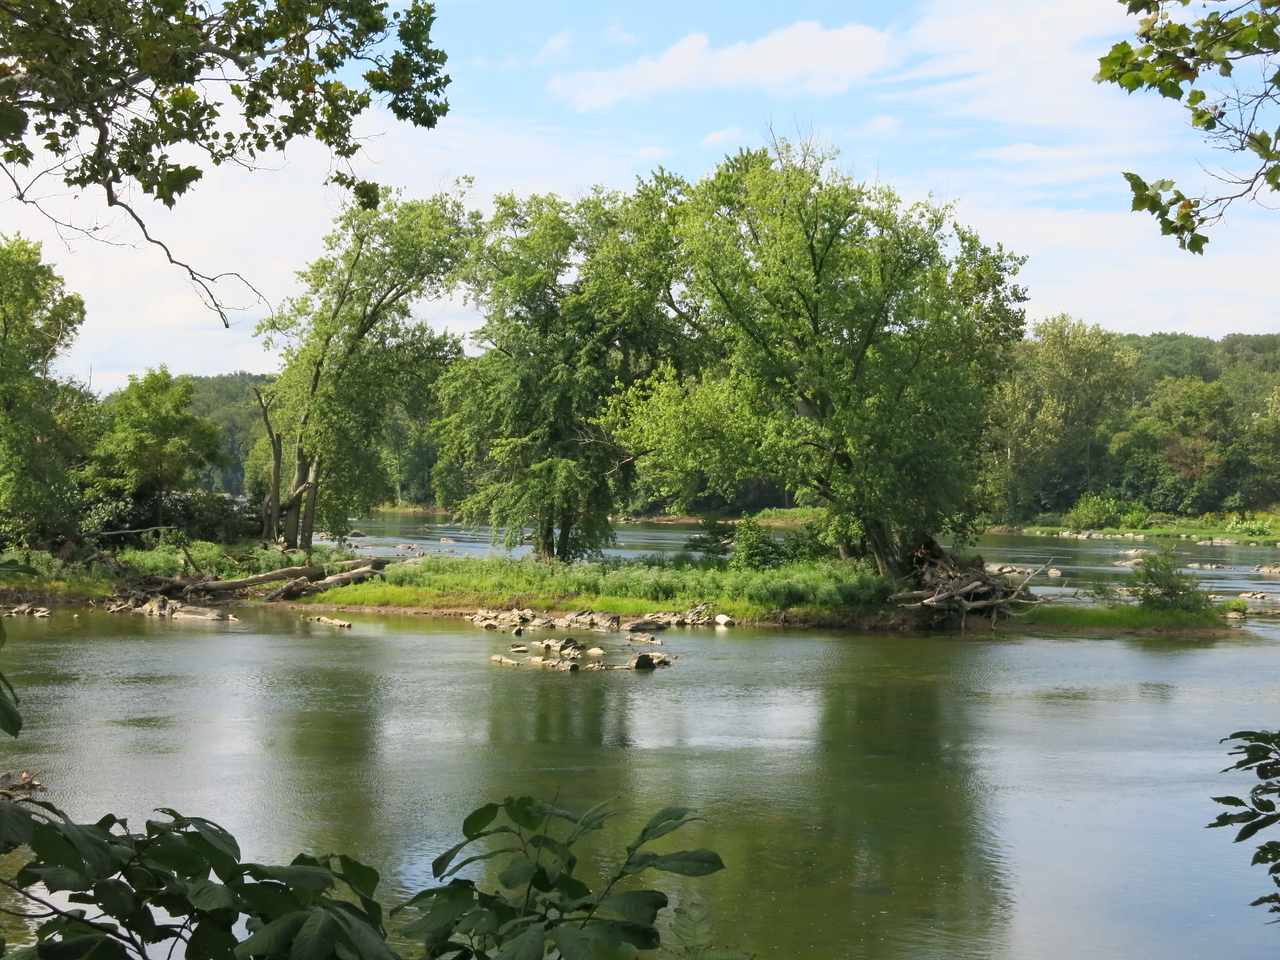 Trees on an an island in the Potomac River